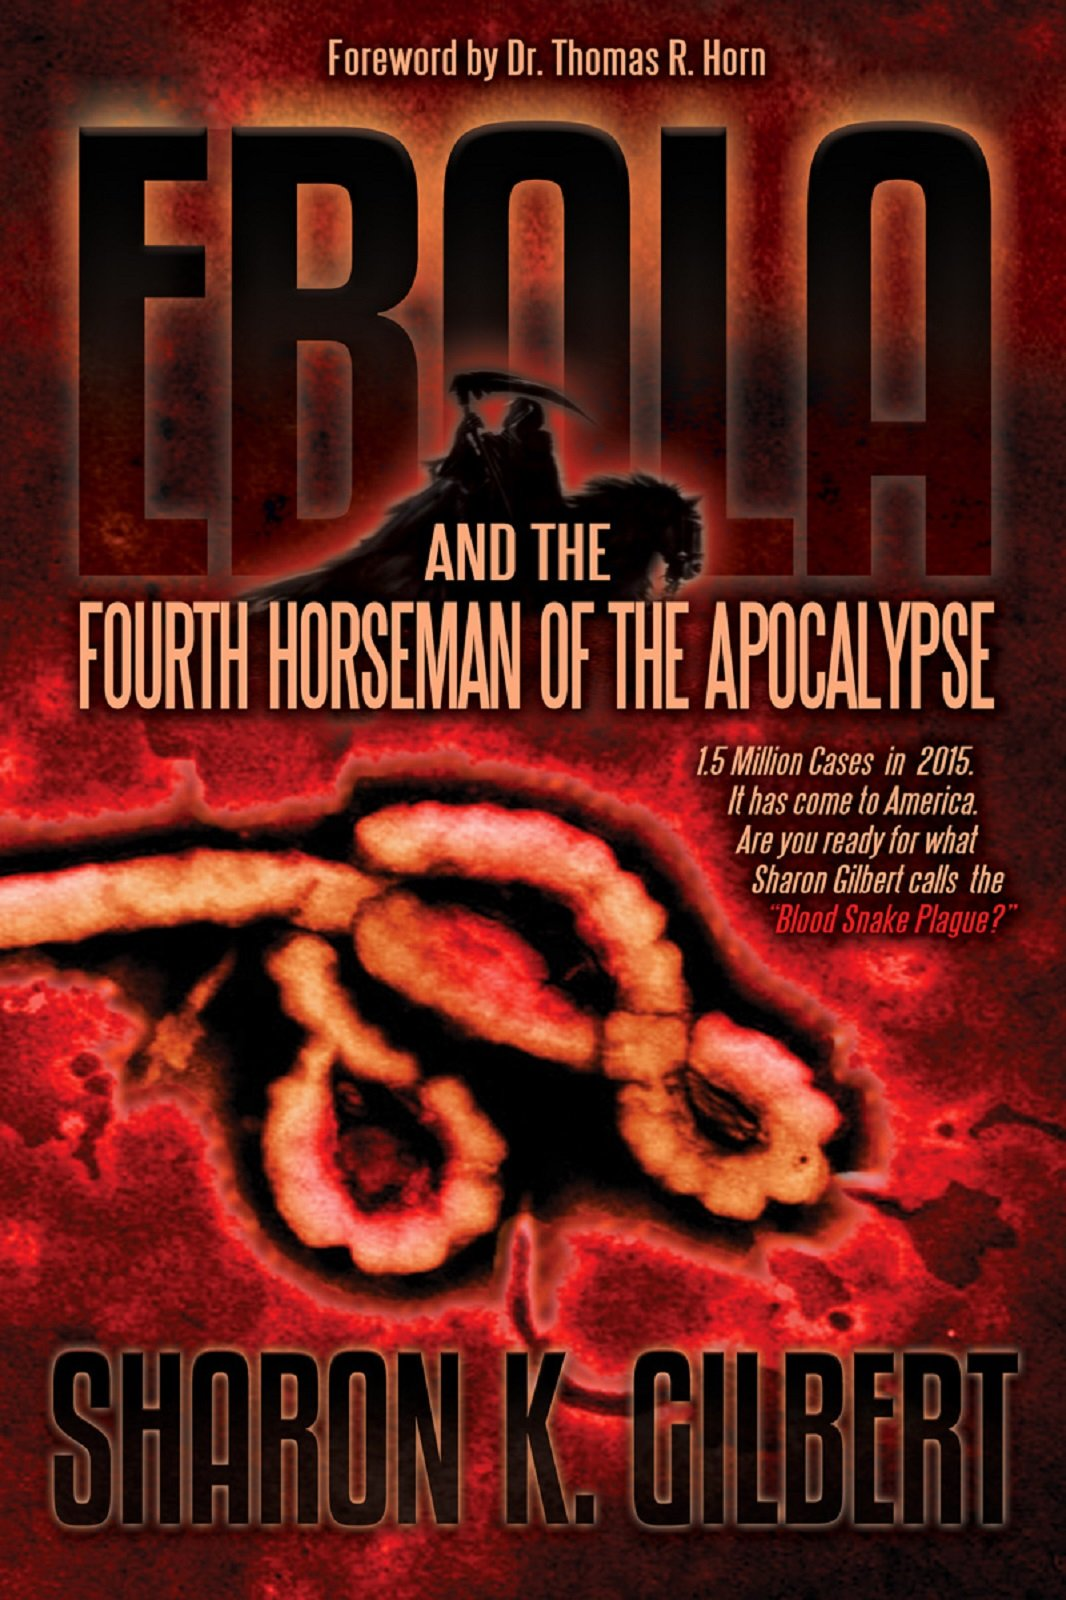 Ebola and the Fourth Horseman of the Apocalypse by Sharon K. Gilbert